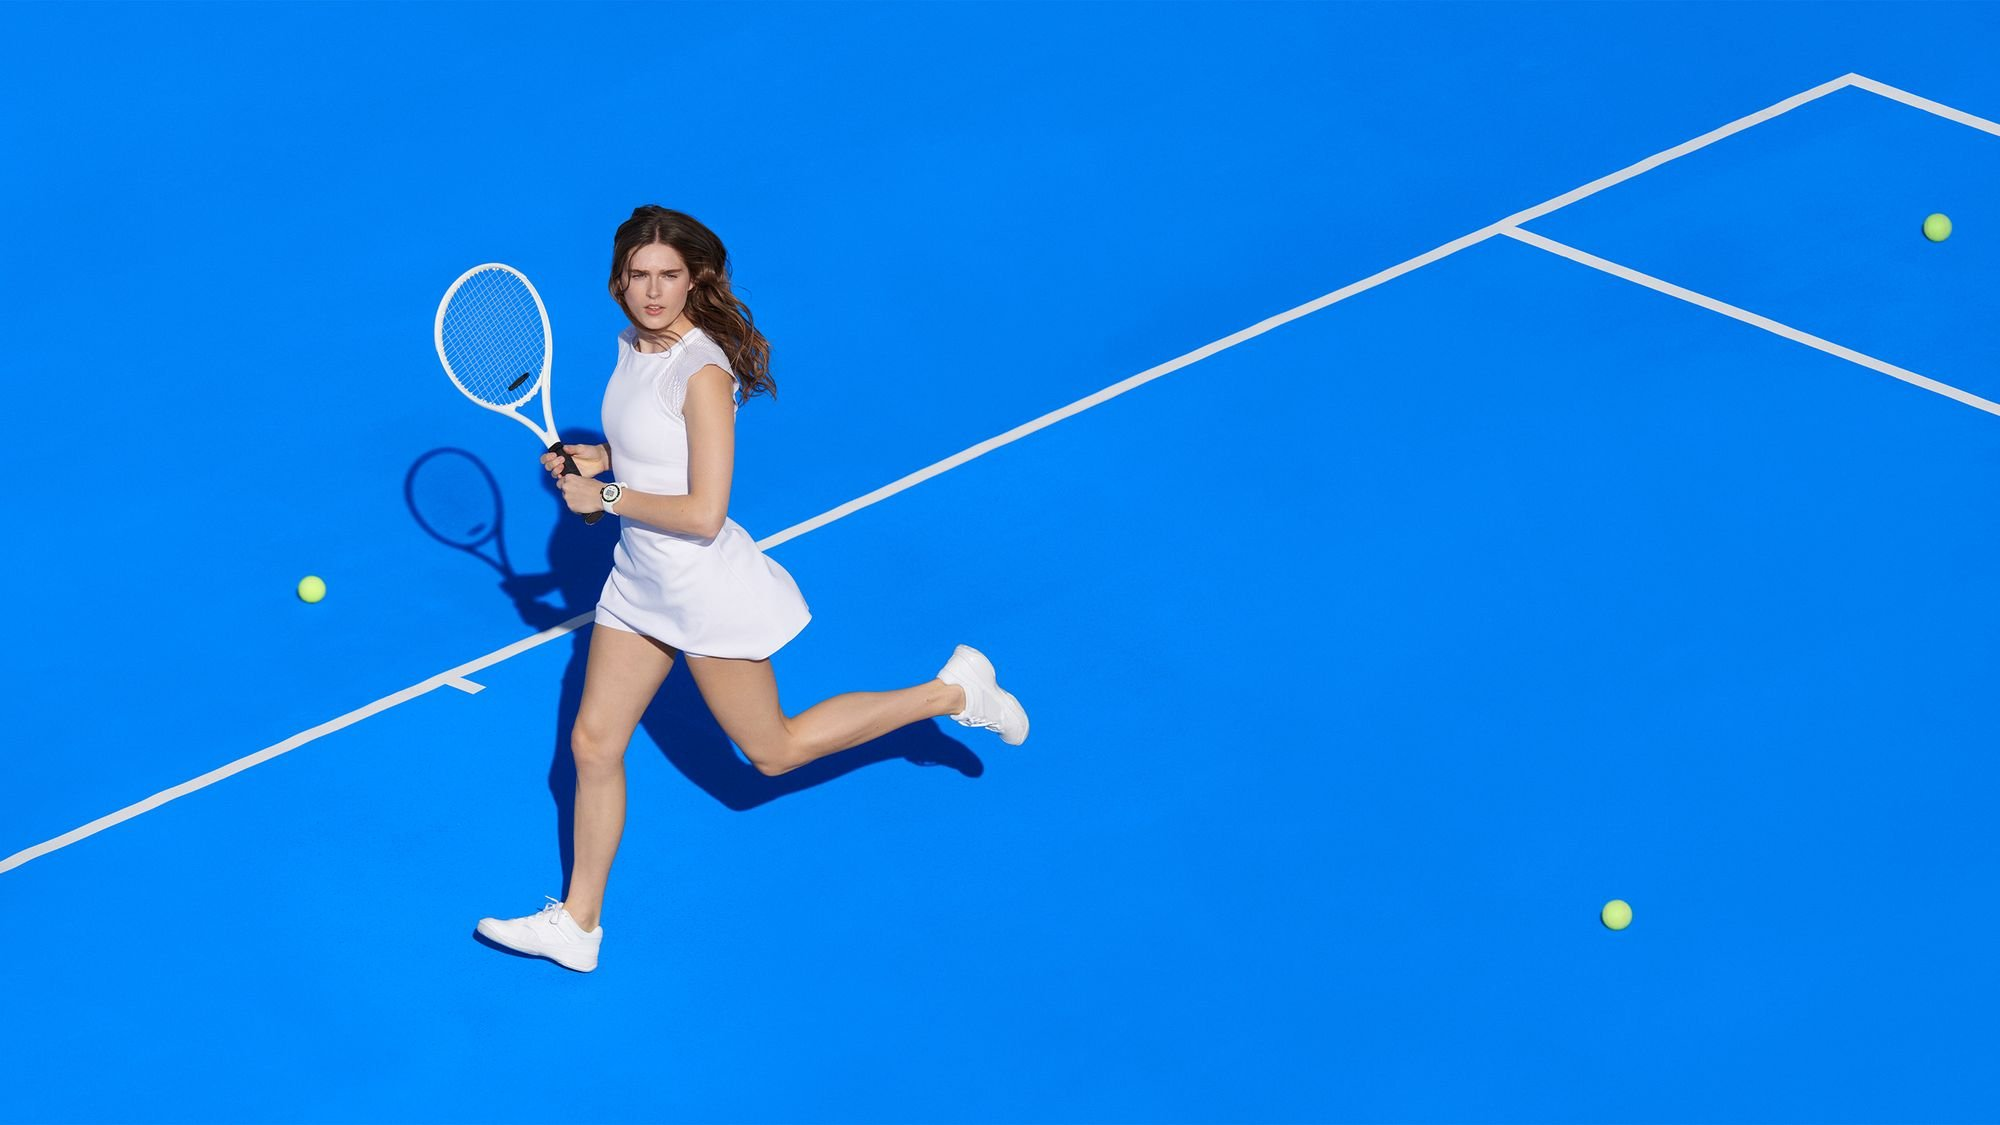 Woman playing tennis wearing a white dress and Google Wear OS watch, art direction by RoAndCo